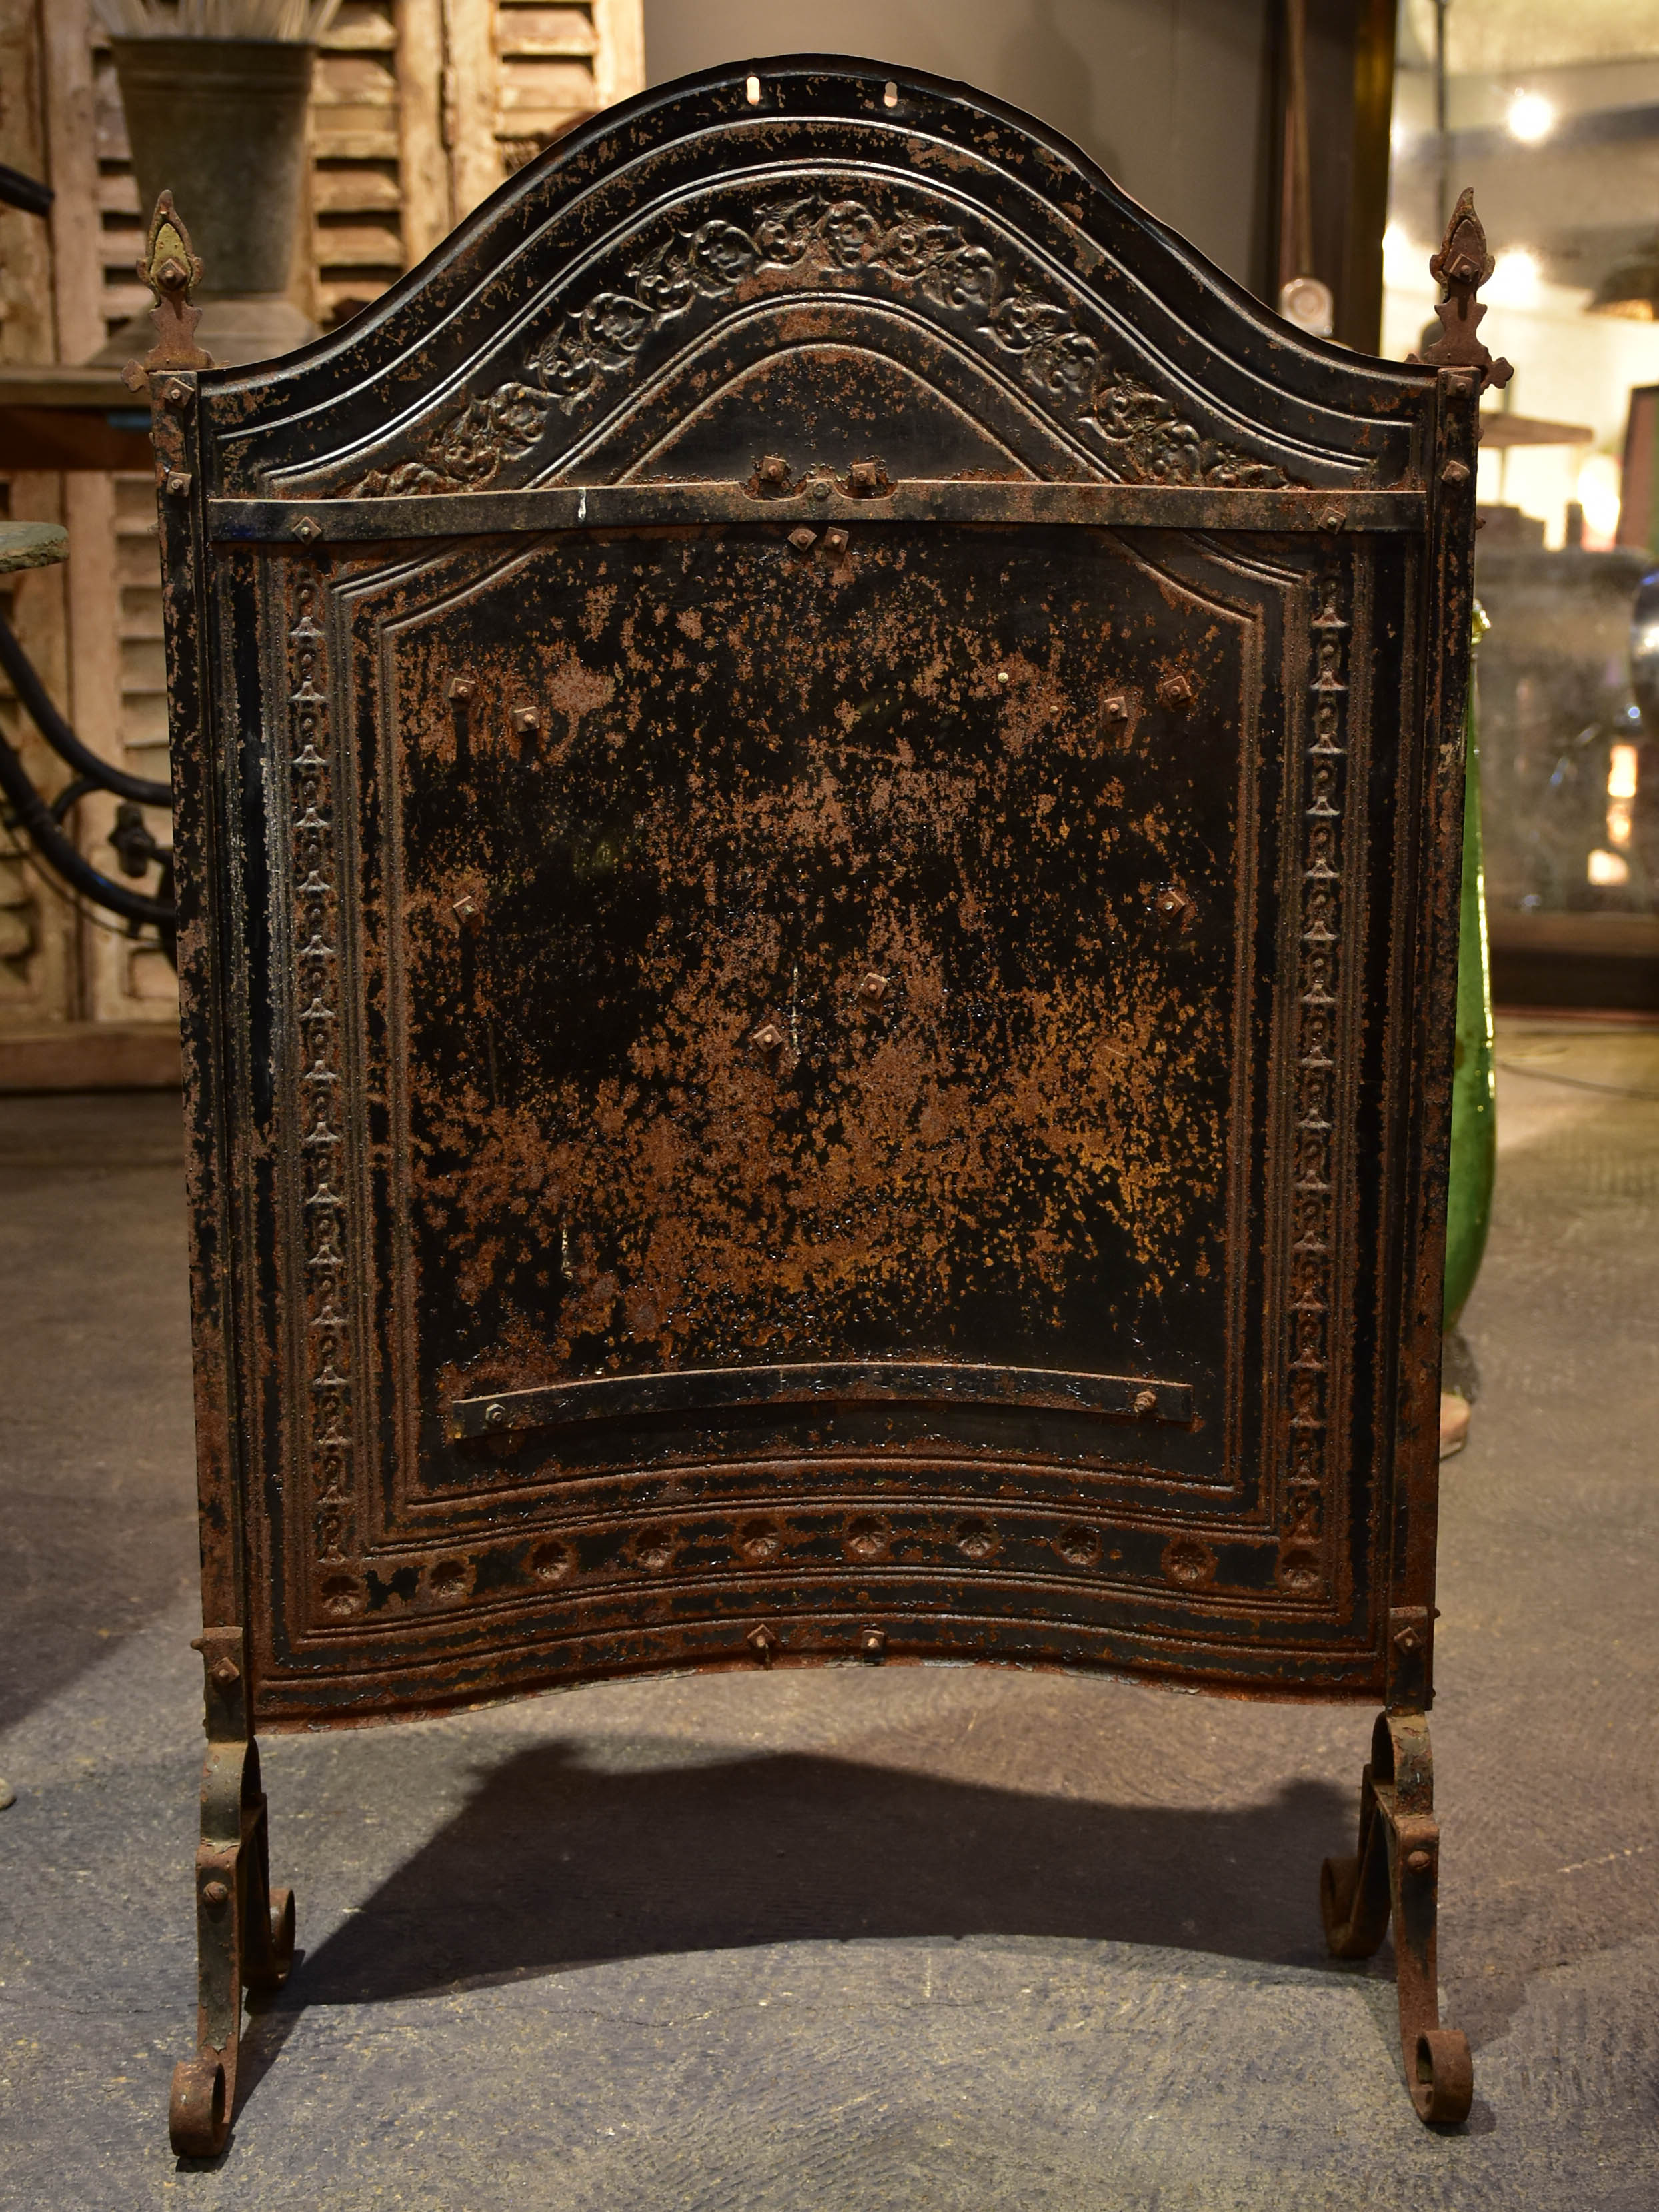 Napoleon III chimney screen